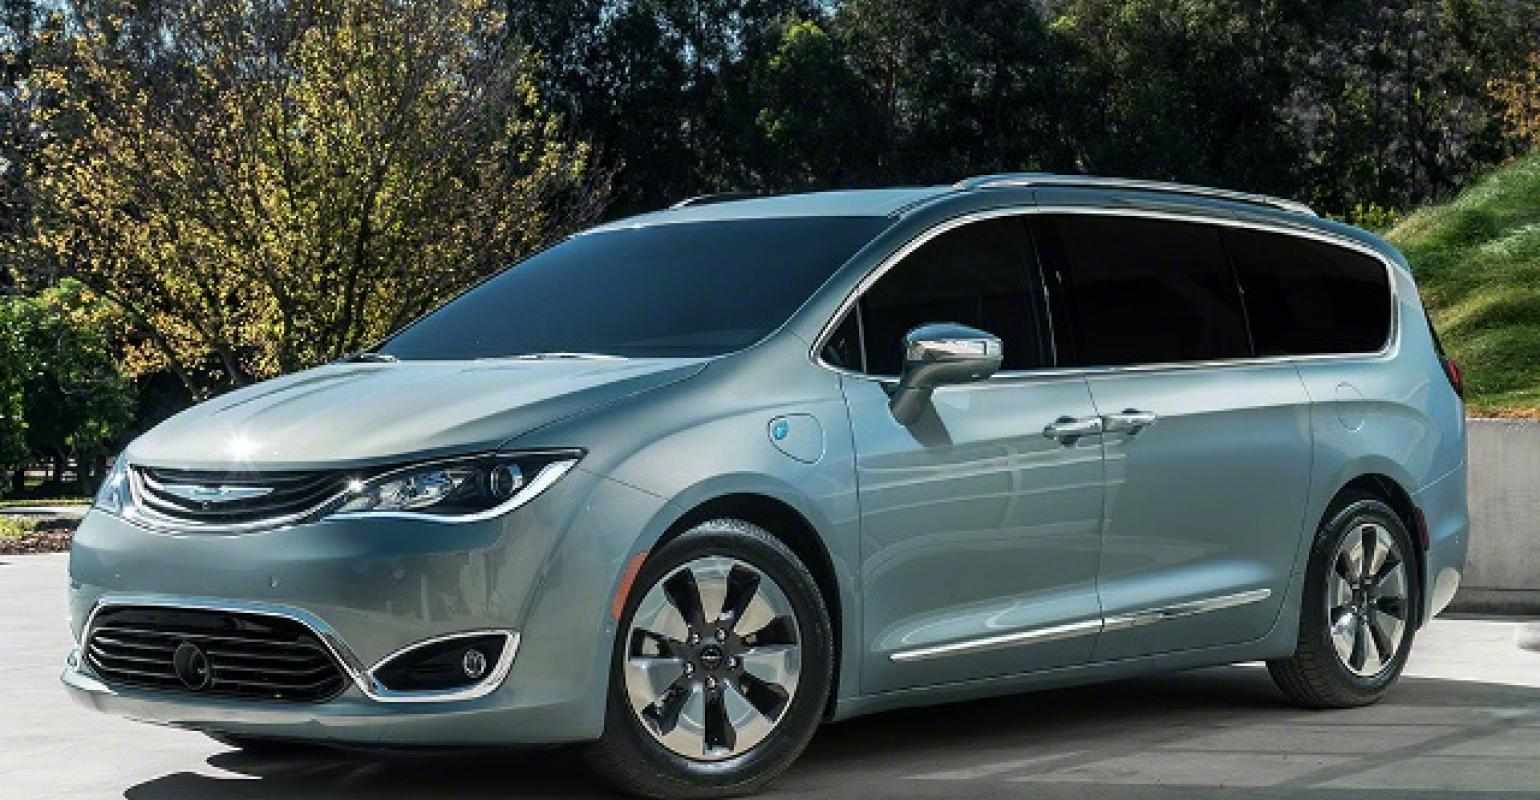 Flowing Lines And Planted Stance Give Rsquo17 Chrysler Pacifica New Take On Minivan Segment